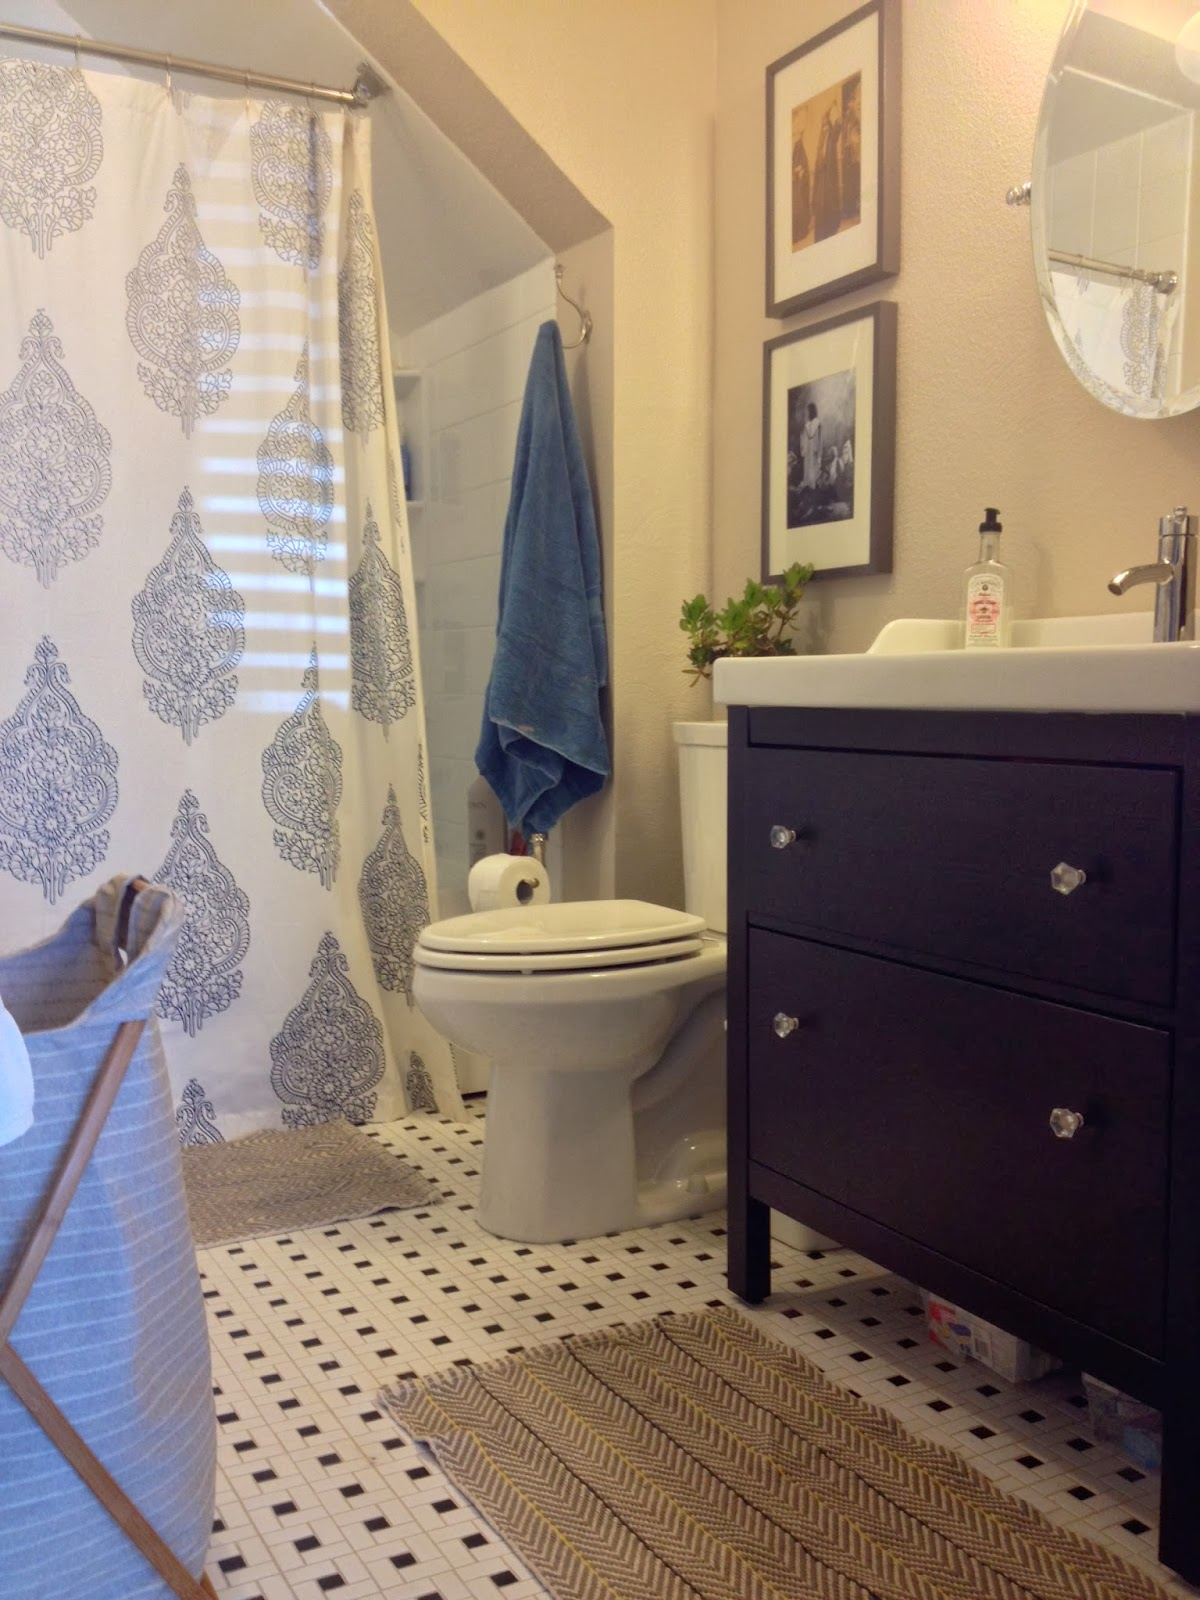 Copy Cat Chic: Copy Cat Chic Room Redo | Contemporary Bathroom ...